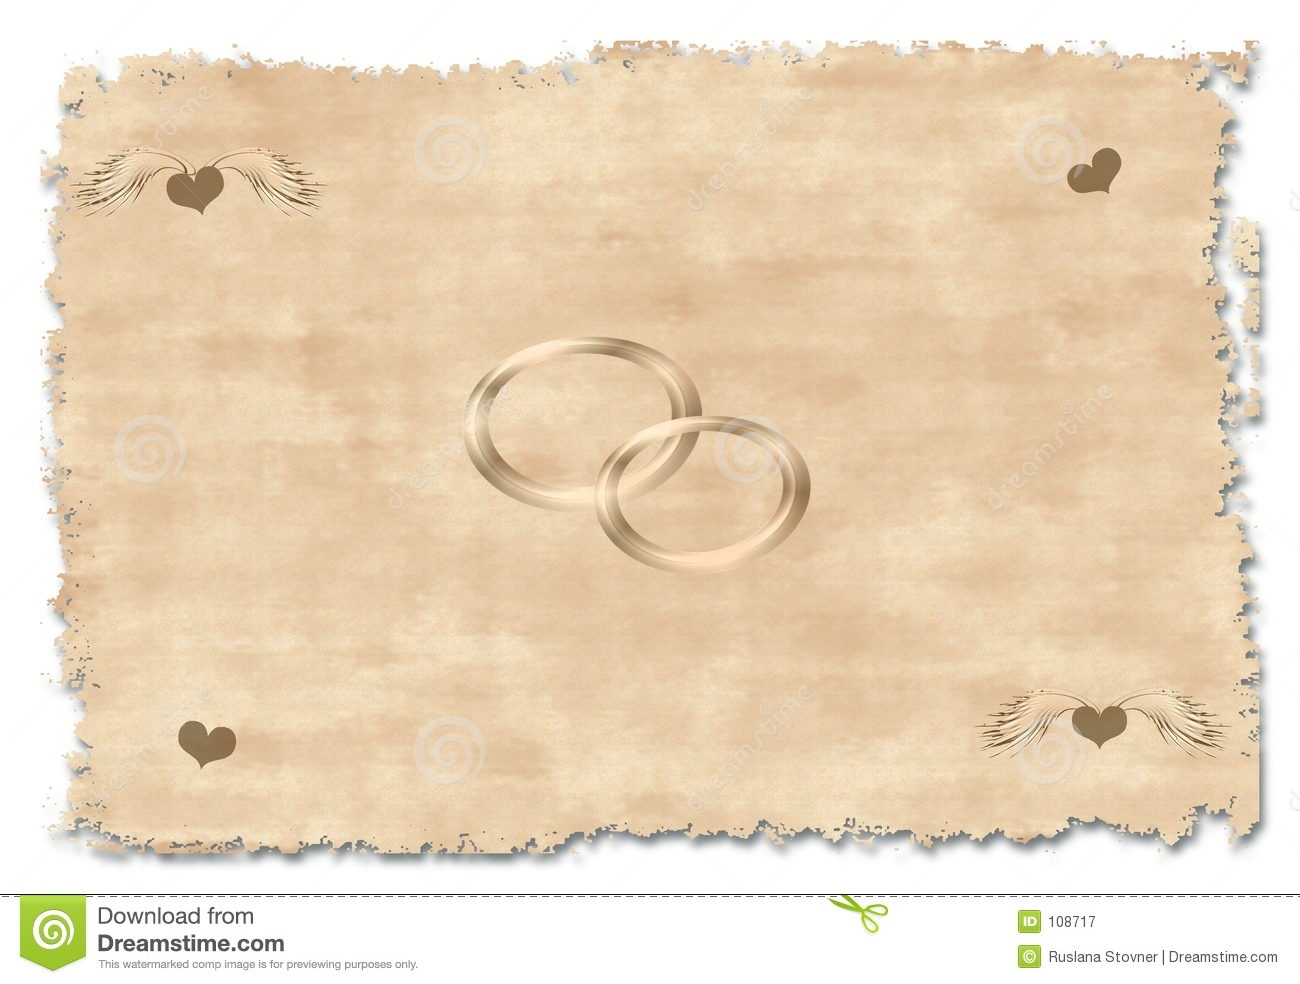 ideas email wedding invitation templates ideas email wedding invitation templates old wedding invitation royalty stock photography image 108717